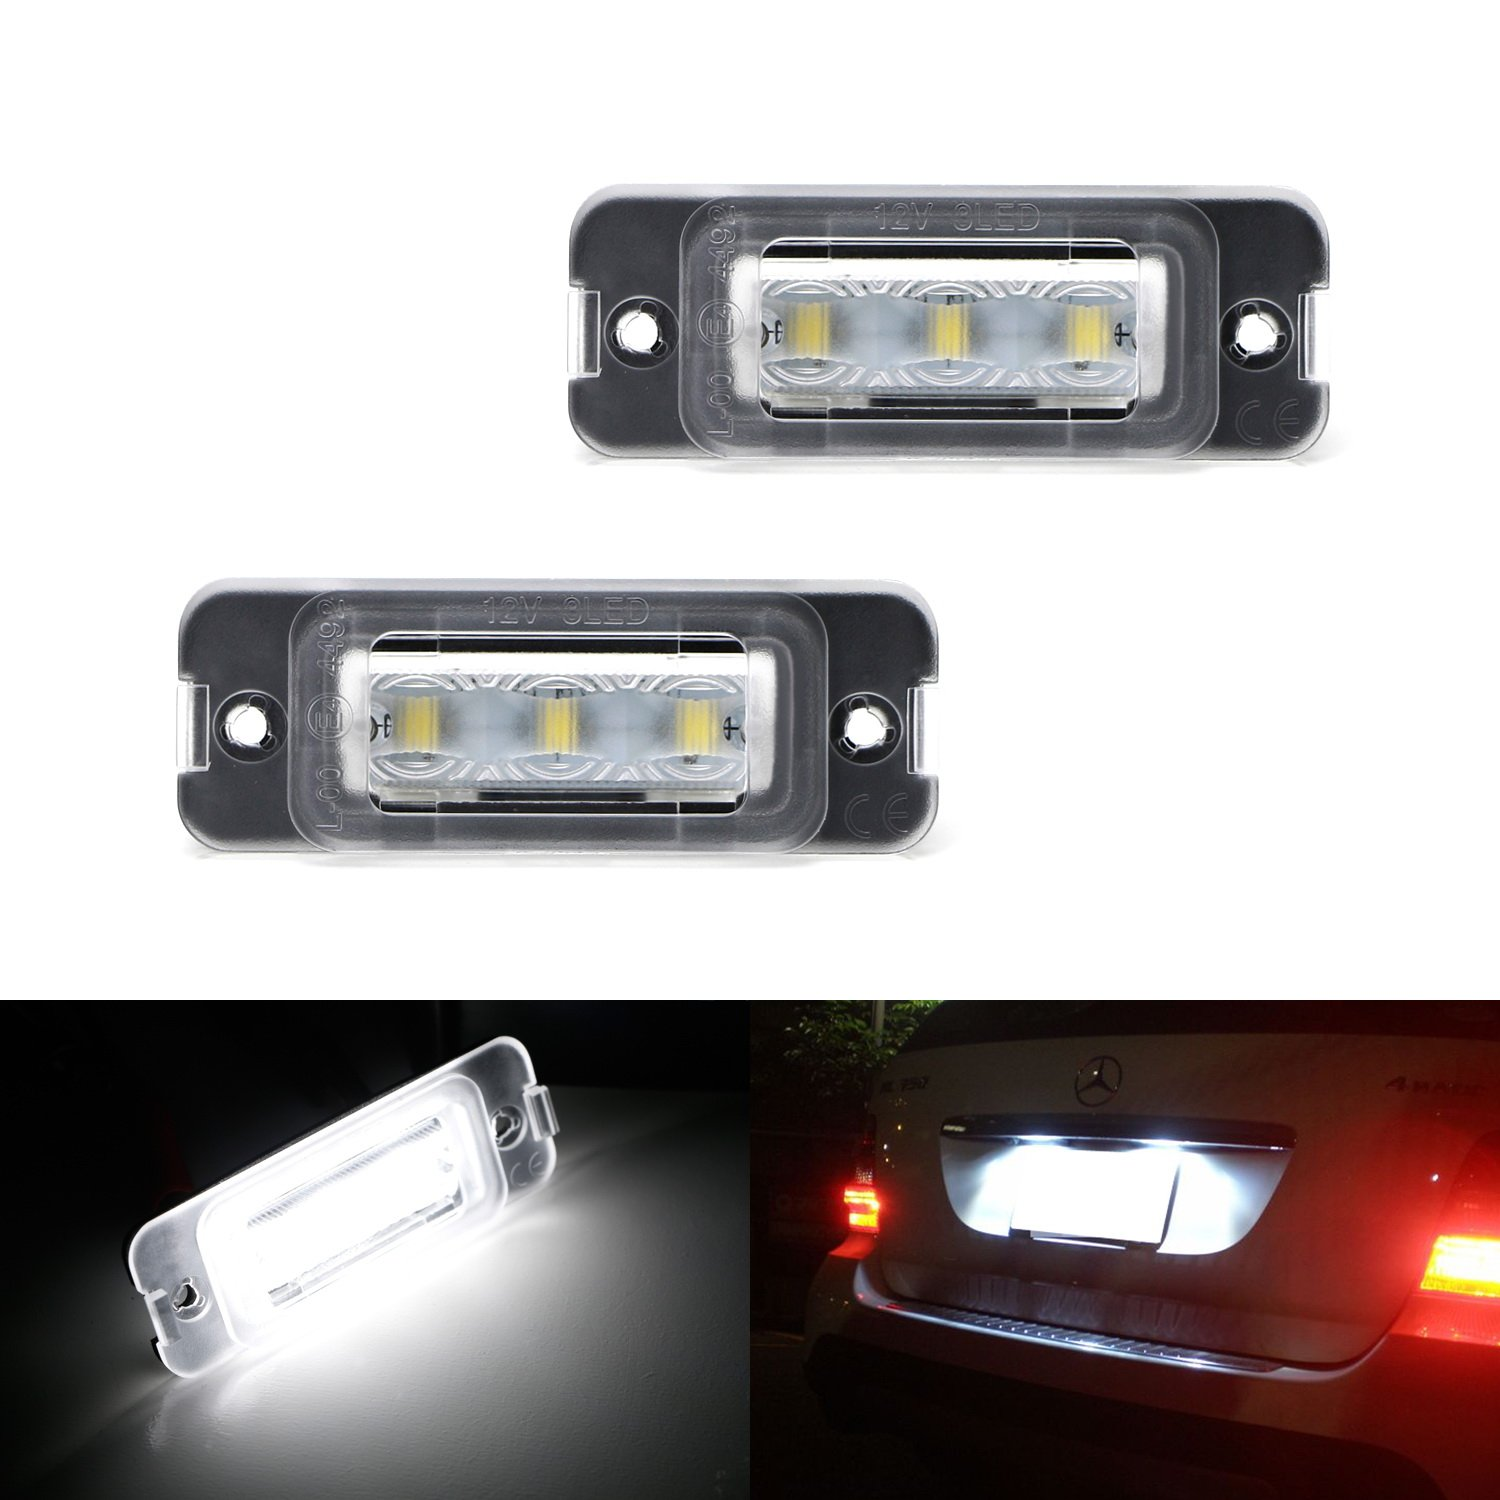 iJDMTOY Xenon White CAN-bus 3-LED License Plate Lights Assy For Mercedes-Benz ML M GL R Class Gasoline Version (W164 X164 W251)